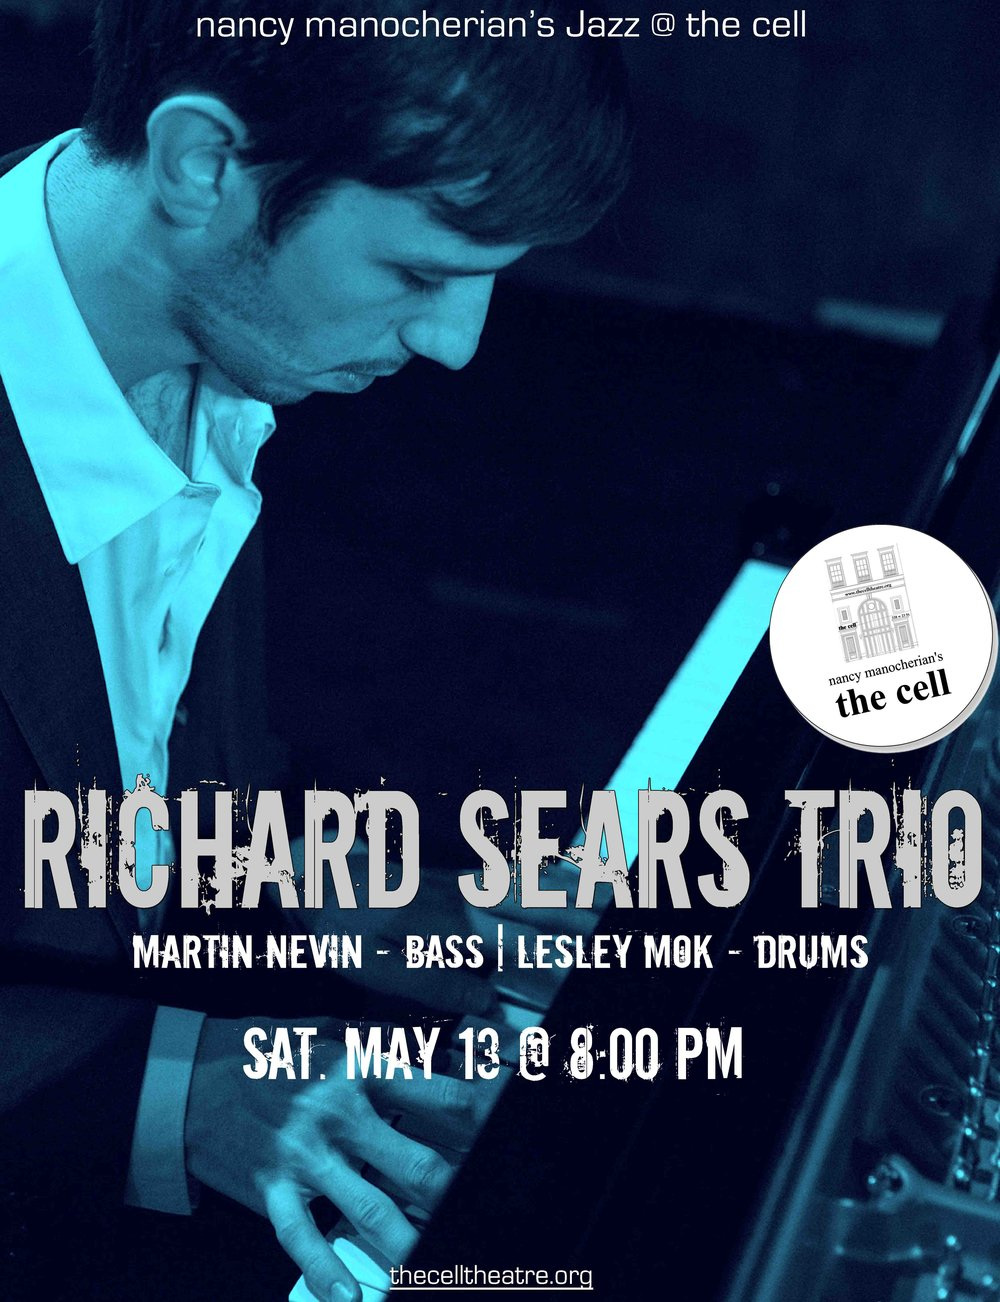 "Pianist Richard Sears possesses an original voice as an improvisor and composer. His composition has been recognized by grants from the Aaron Copland Fund and the Los Angeles Jazz Society. As a performer, Richard has appeared with the likes of Chick Corea, Mark Turner, Muhal Richard Abrams, Joshua Redman, and Billy Hart.  His most recent release, ""Altadena"", features the legendary drummer, Albert ""Tootie"" Heath performing with Richard's sextet. ""Altadena"" earned 4 stars in Downbeat Magazine, and was named ""one of 2016's best release"" by AllAboutJazz.  This concert will feature Martin Nevin on bass, and a prodigious young drummer named Lesley Mok. The trio will perform original compositions and lesser heard jazz compositions.  ""Great jazz performances take a listener to a realm that's both intimately familiar and bracingly new. This exceptional young trio led by pianist Richard Sears dwells in that sweet spot between tradition and discovery. While many of his contemporaries are casting a wide net for influences, Sears and his bandmates are savvy post-bop explorers dedicated to expanding the jazz idiom from within.""   – Andrew Gilbert, San Francisco Chronicle"